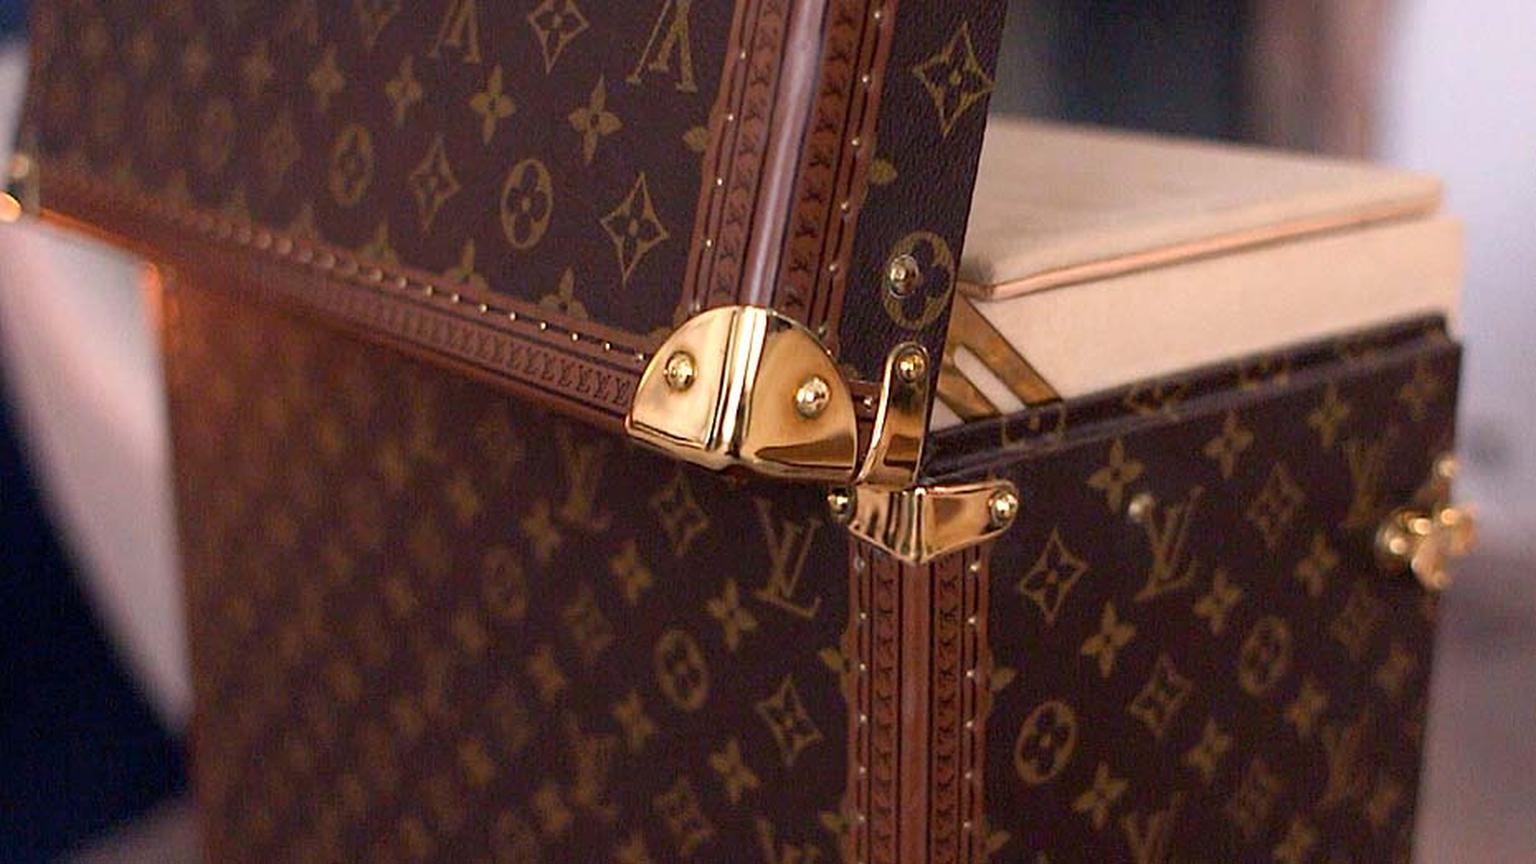 Louis Vuitton watches video_steamer trunk open.jpg